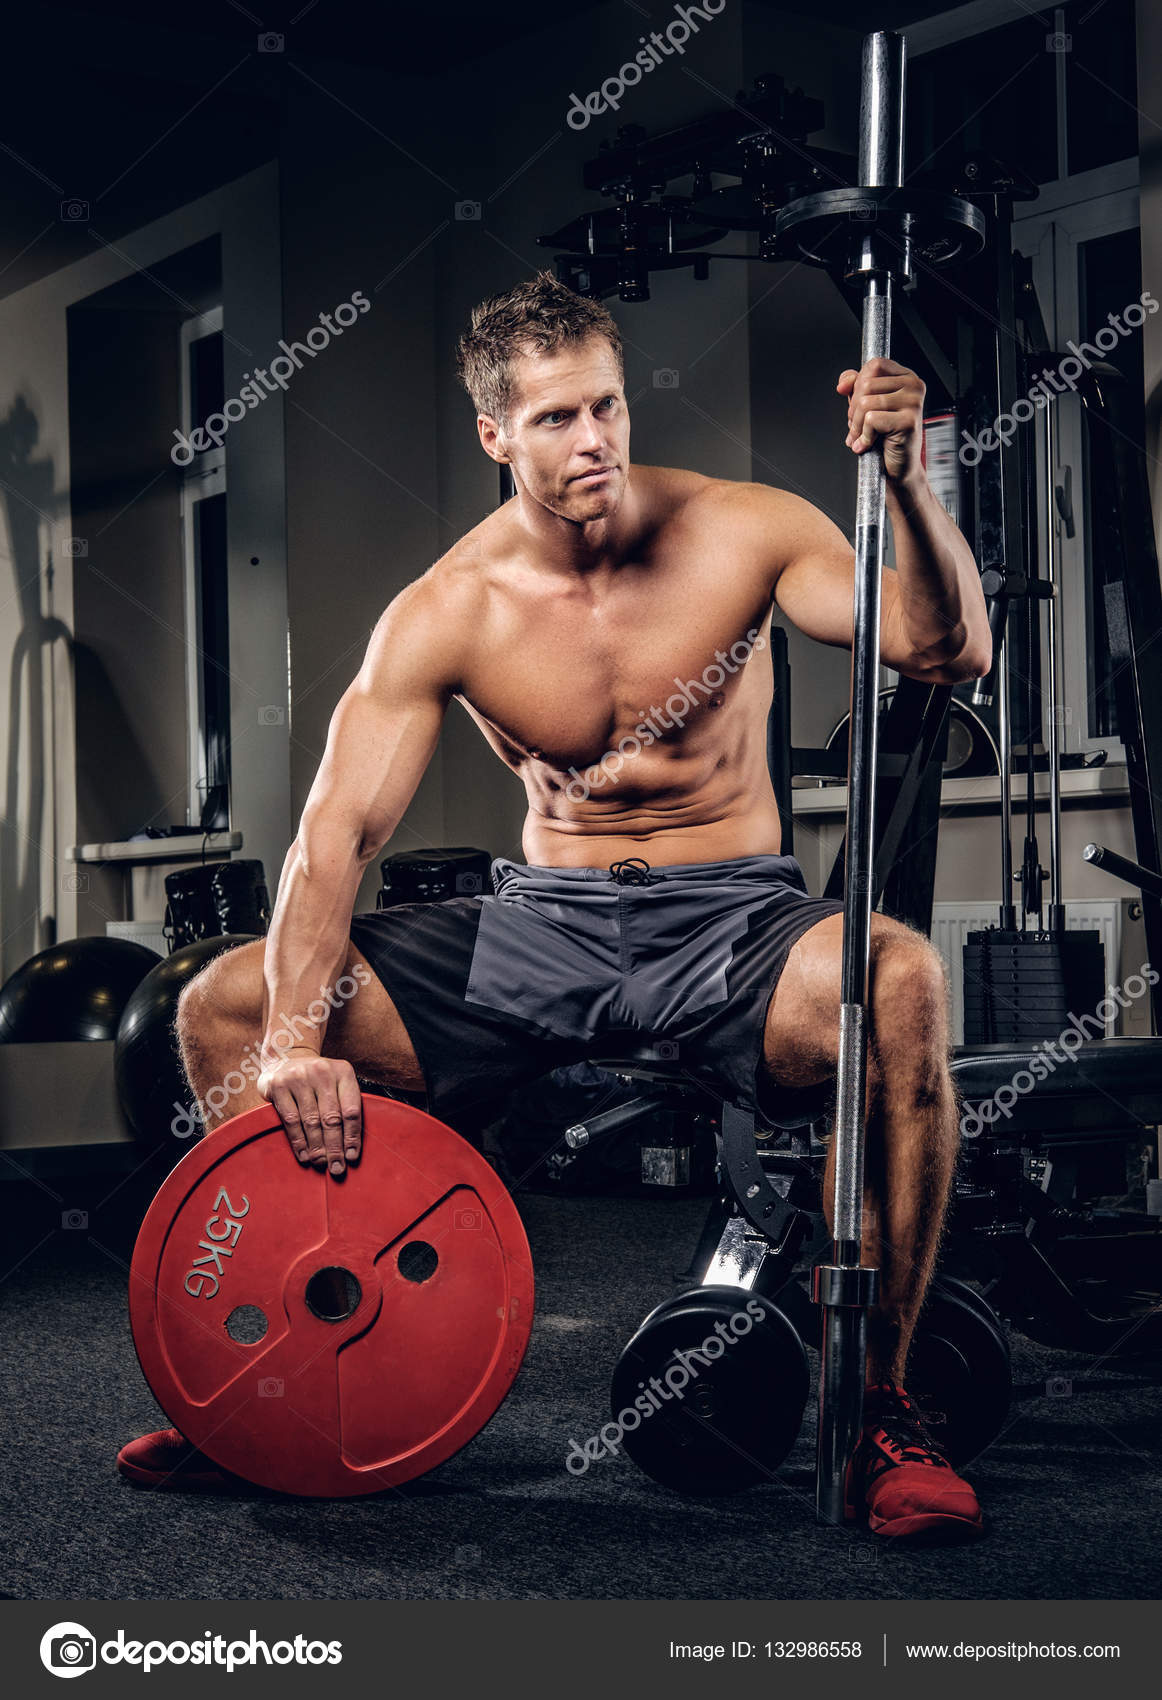 Muscular man holding barbell weight — Stock Photo © fxquadro #132986558